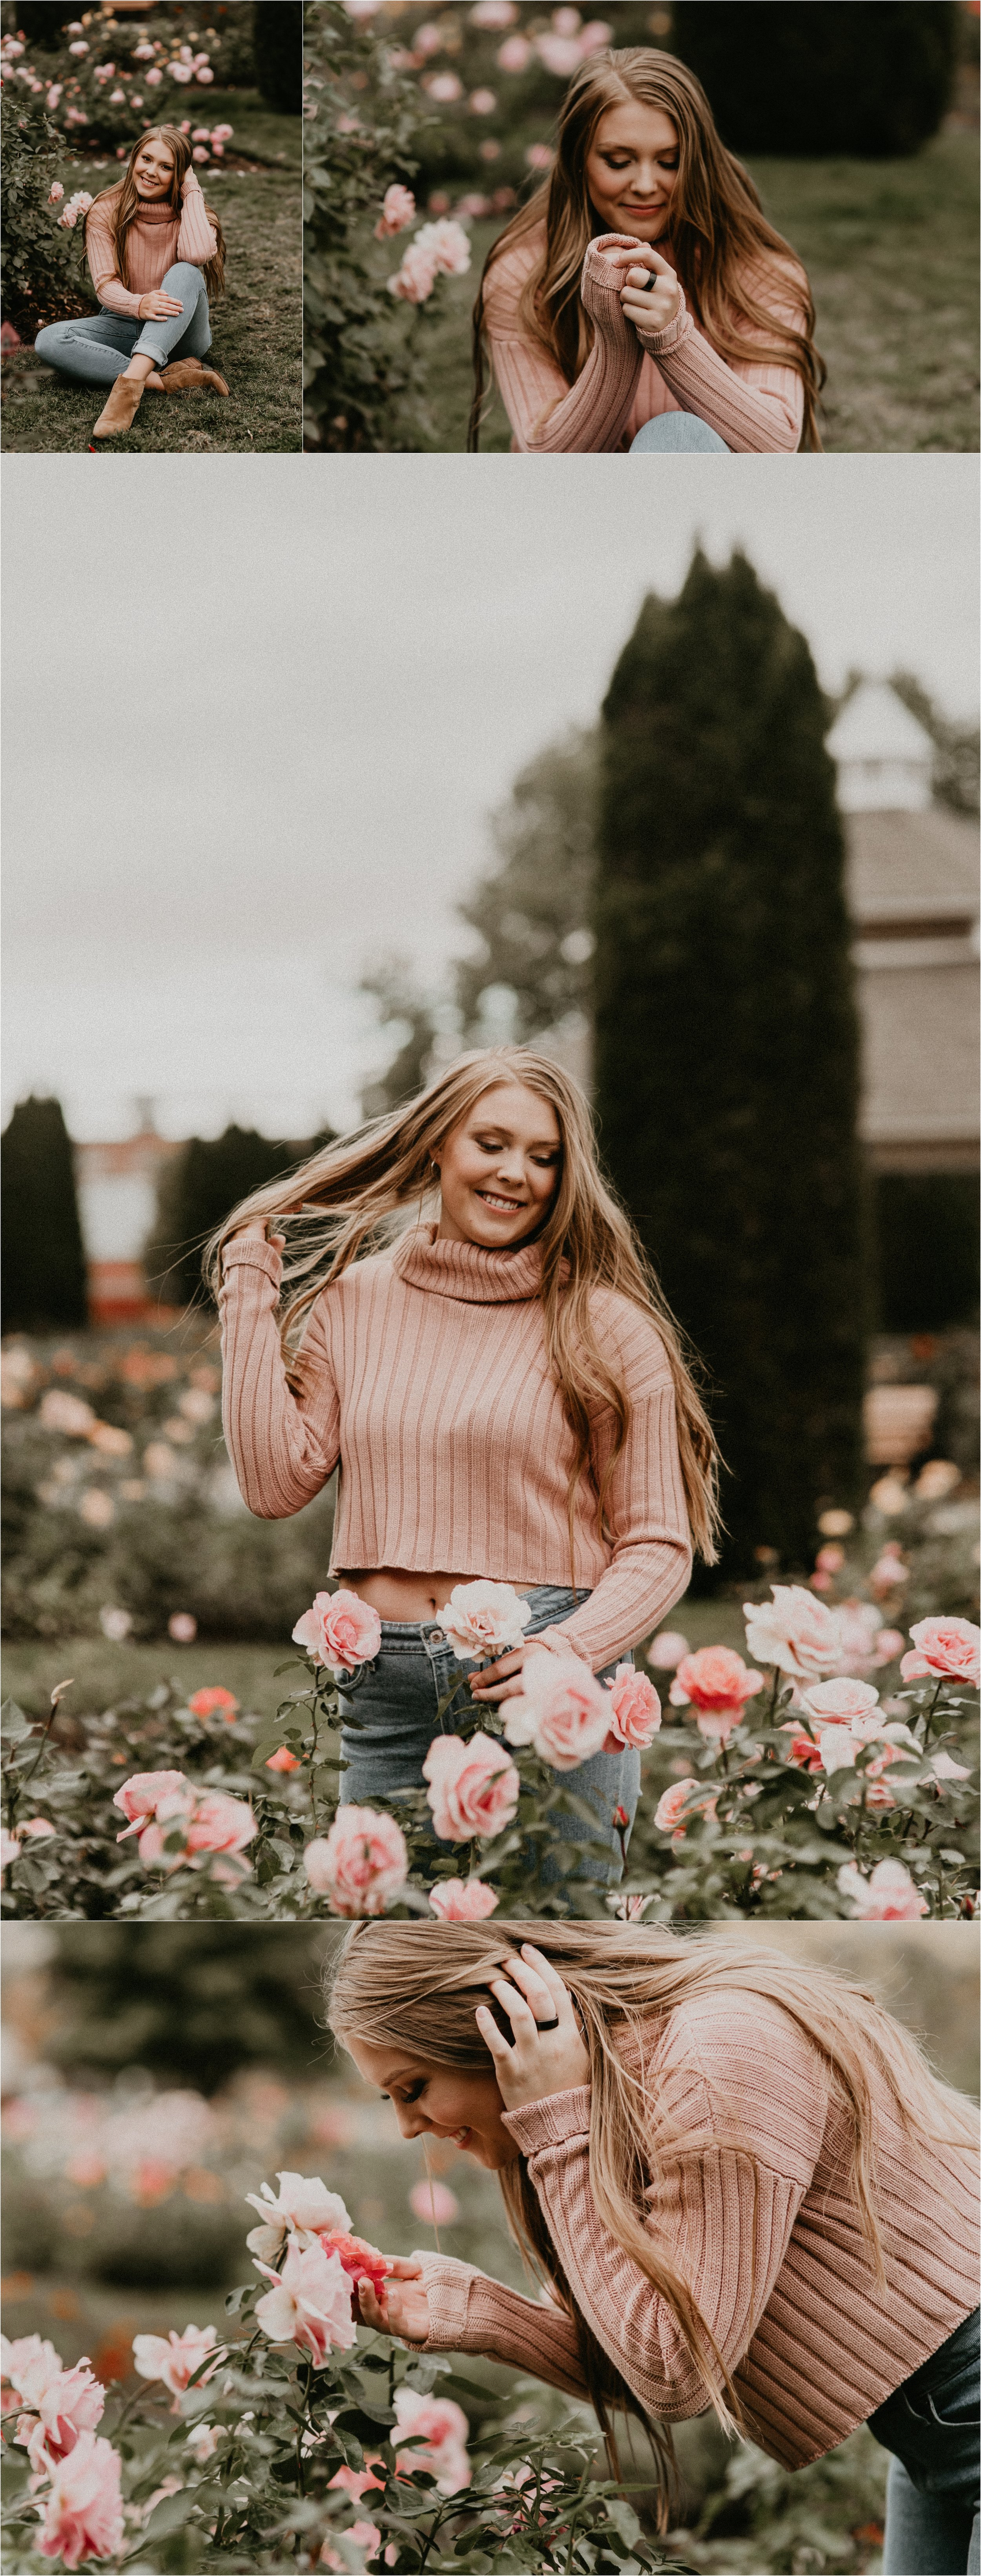 Boise Senior Photographer Makayla Madden Photography Downtown Boise Rose Garden Capital High Senior Flowers Senior Pictures